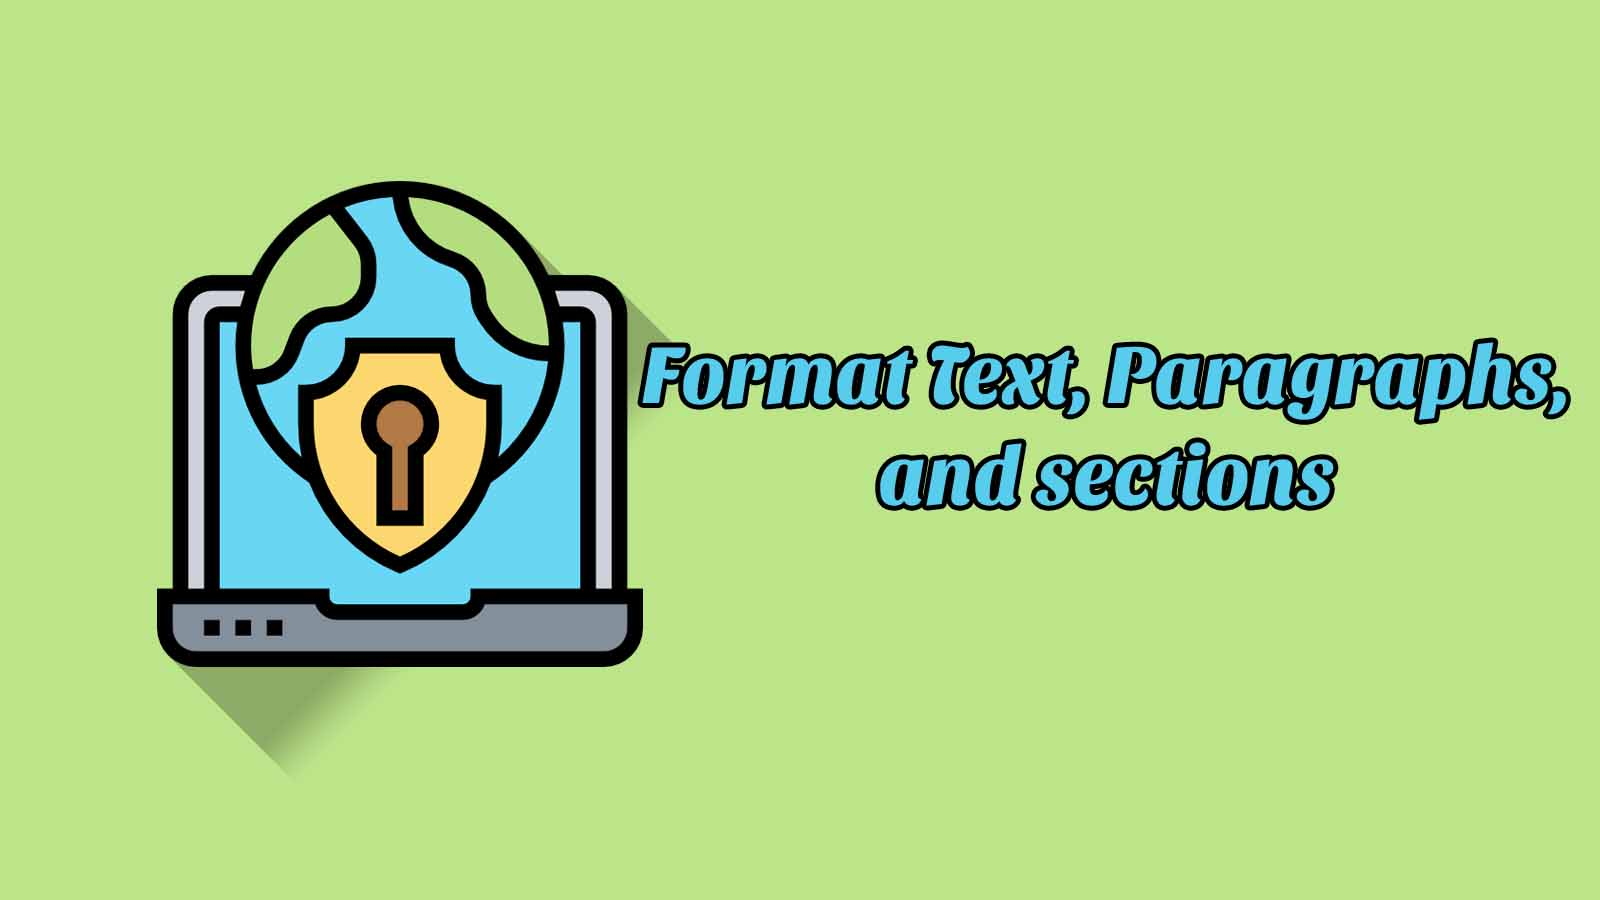 Format Text, Paragraphs, and Section - Word 2019 (APTI)